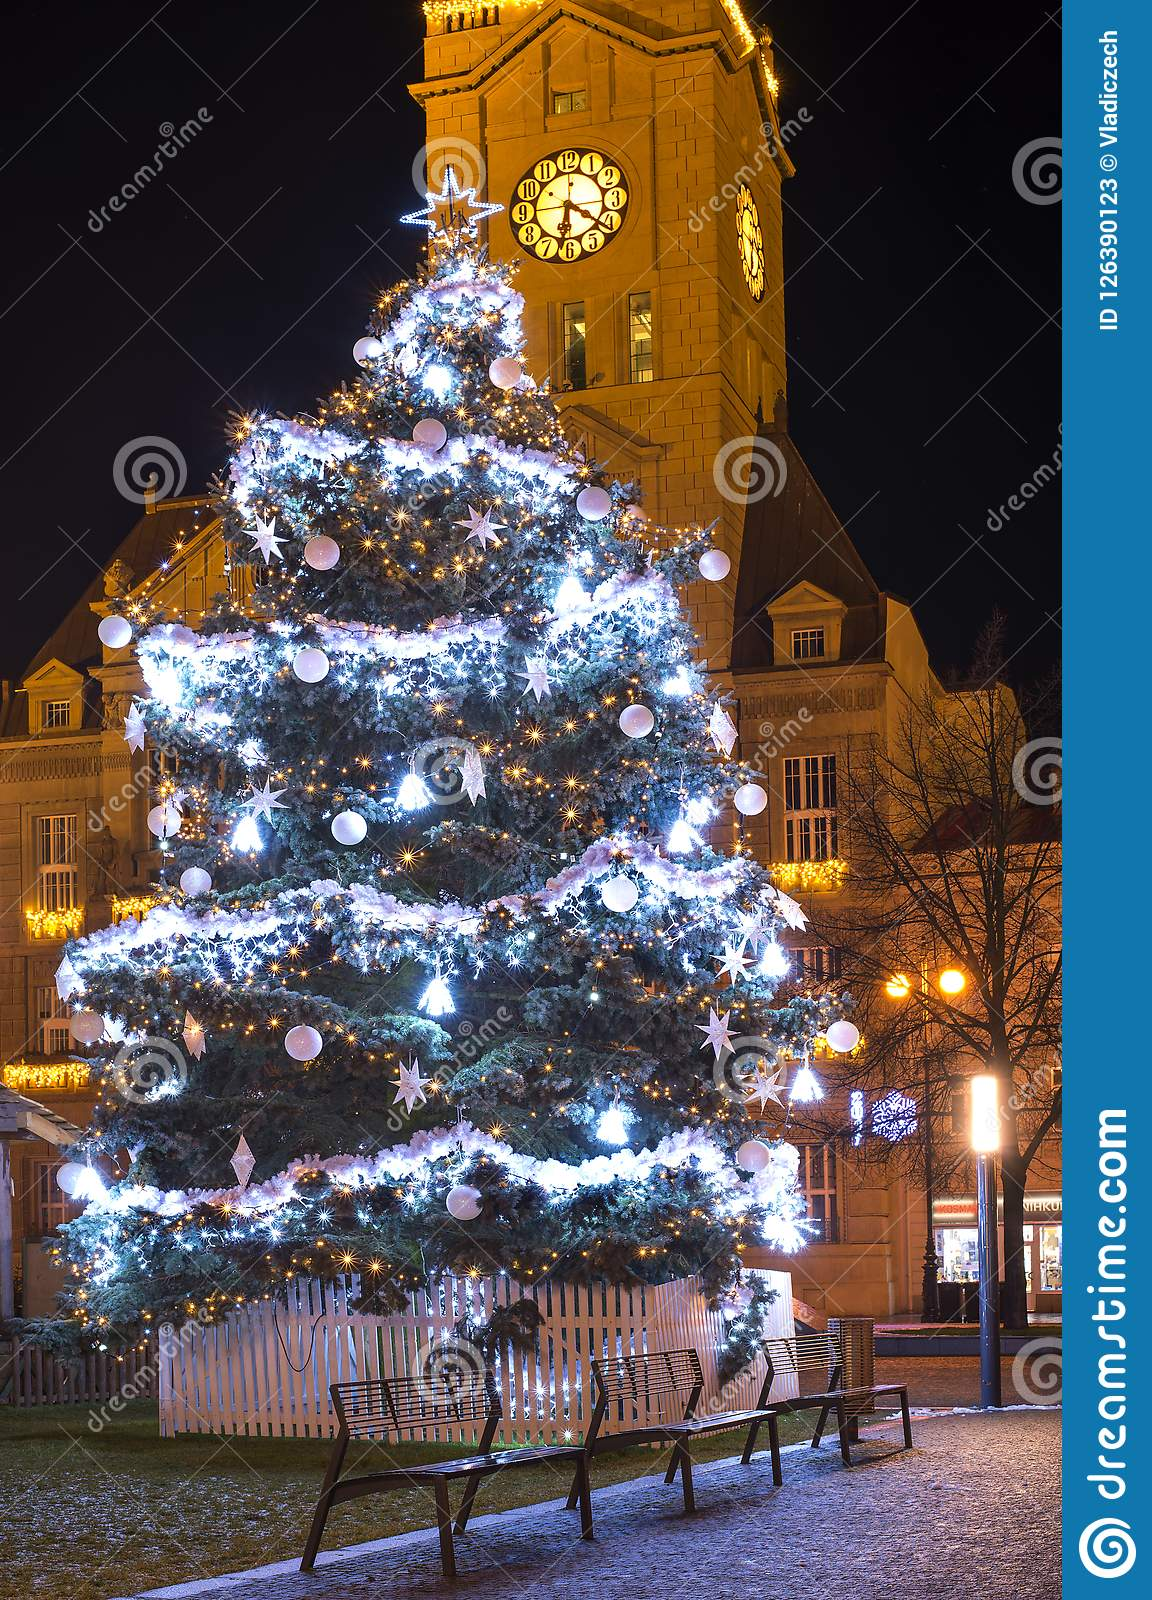 download empty christmas town with decorations and lights and the tree no snow winter time - Christmas Town Decorations